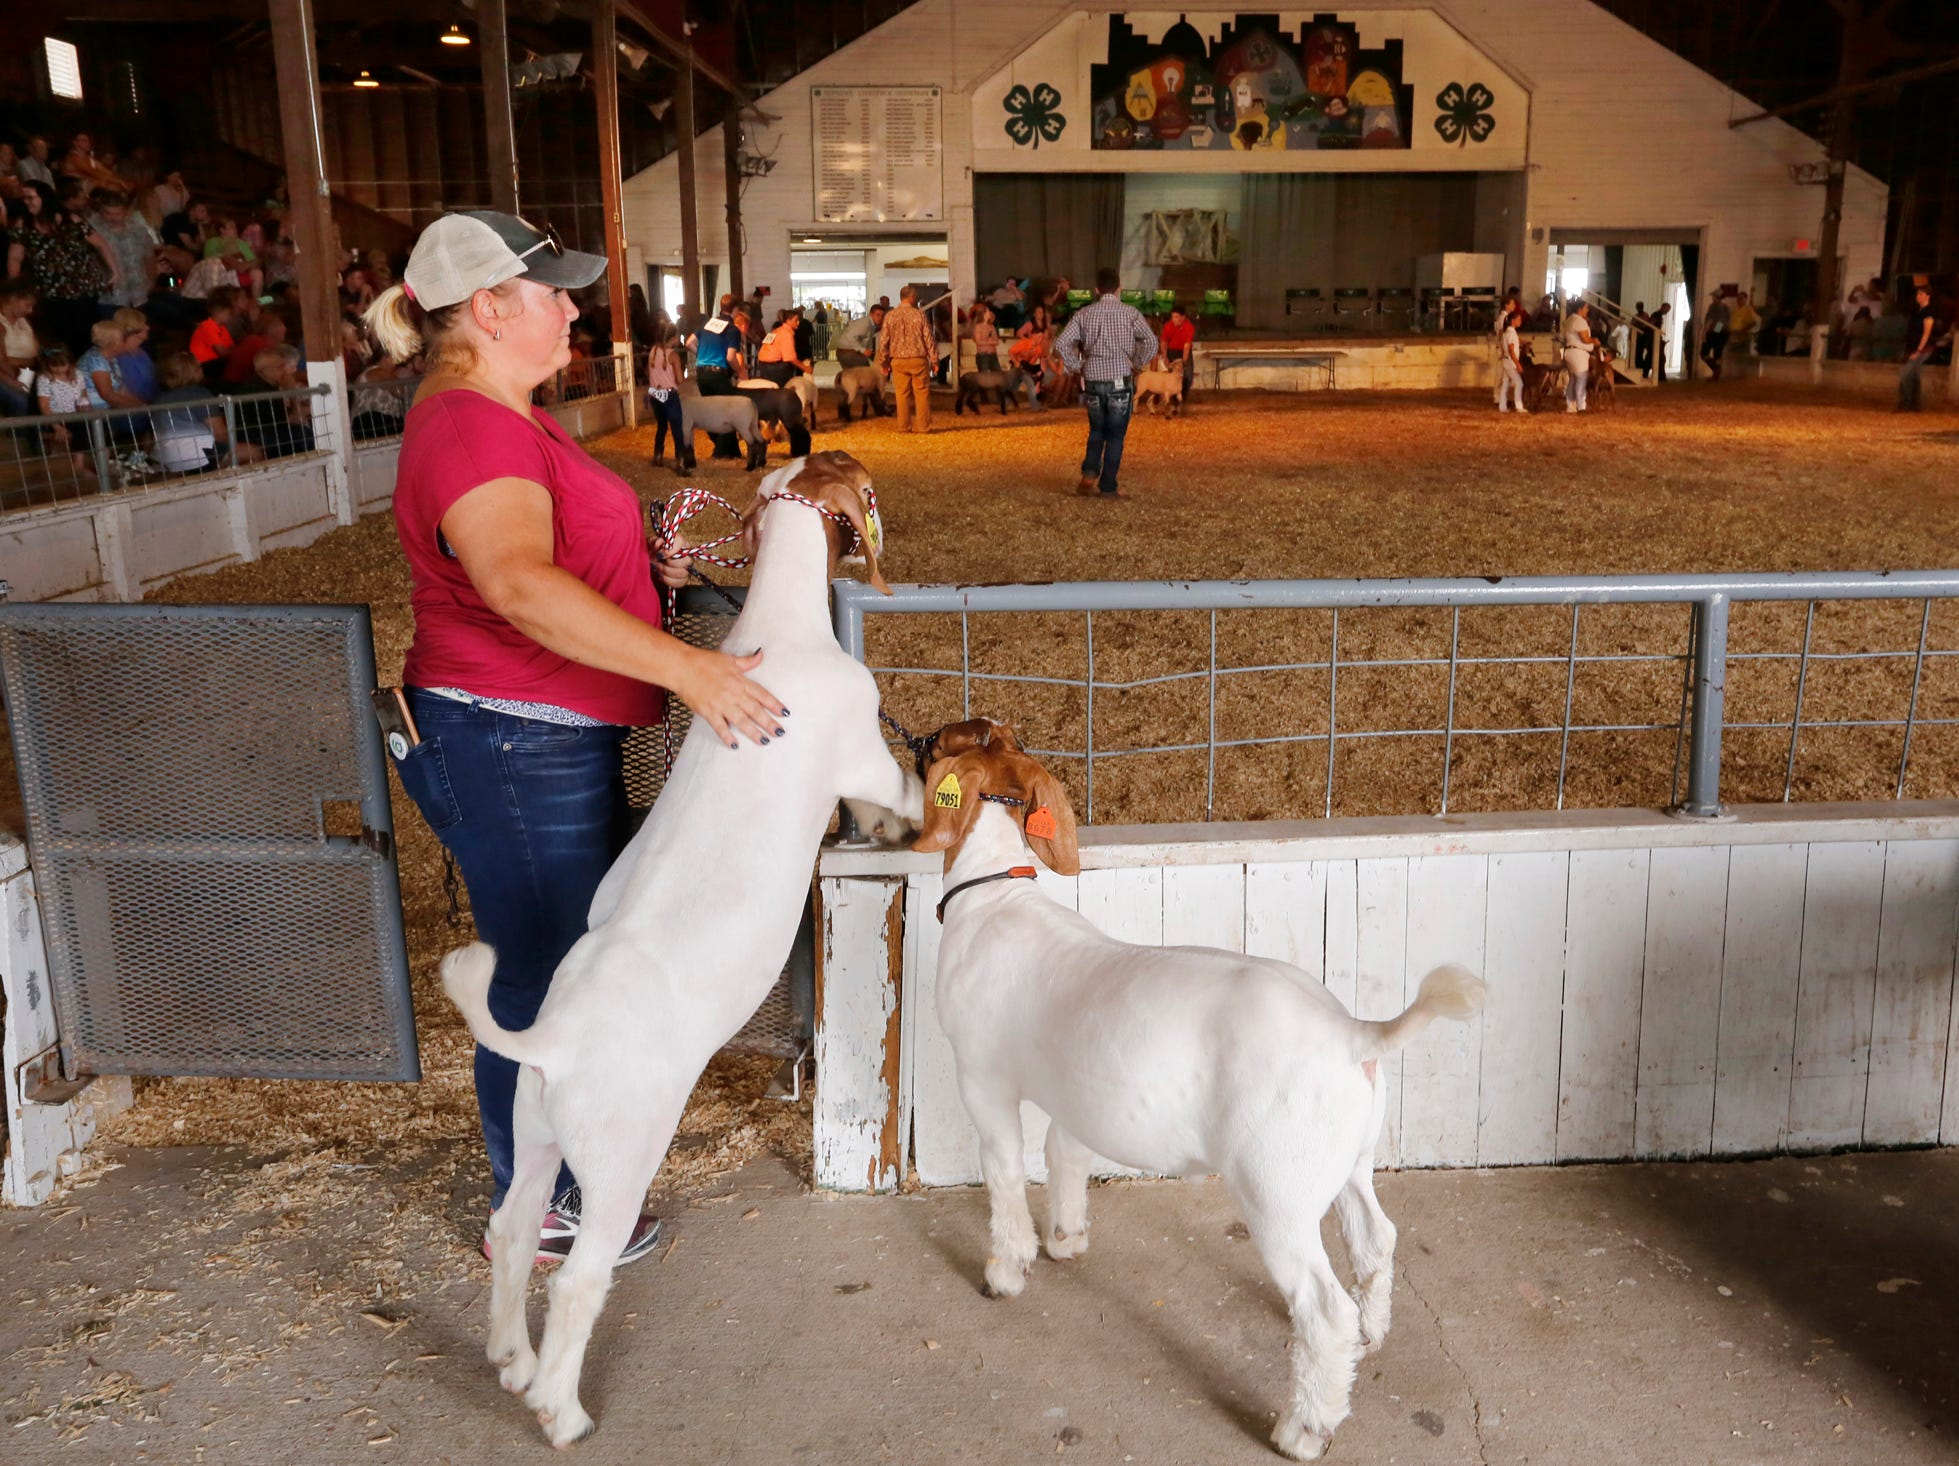 Jenny Brown keeps tabs on Boer goats that belong to her son, Dylan, 11, while he is busy showing other goats at the Tippecanoe County 4-H Fair Monday, July 23, 2018, in Lafayette.